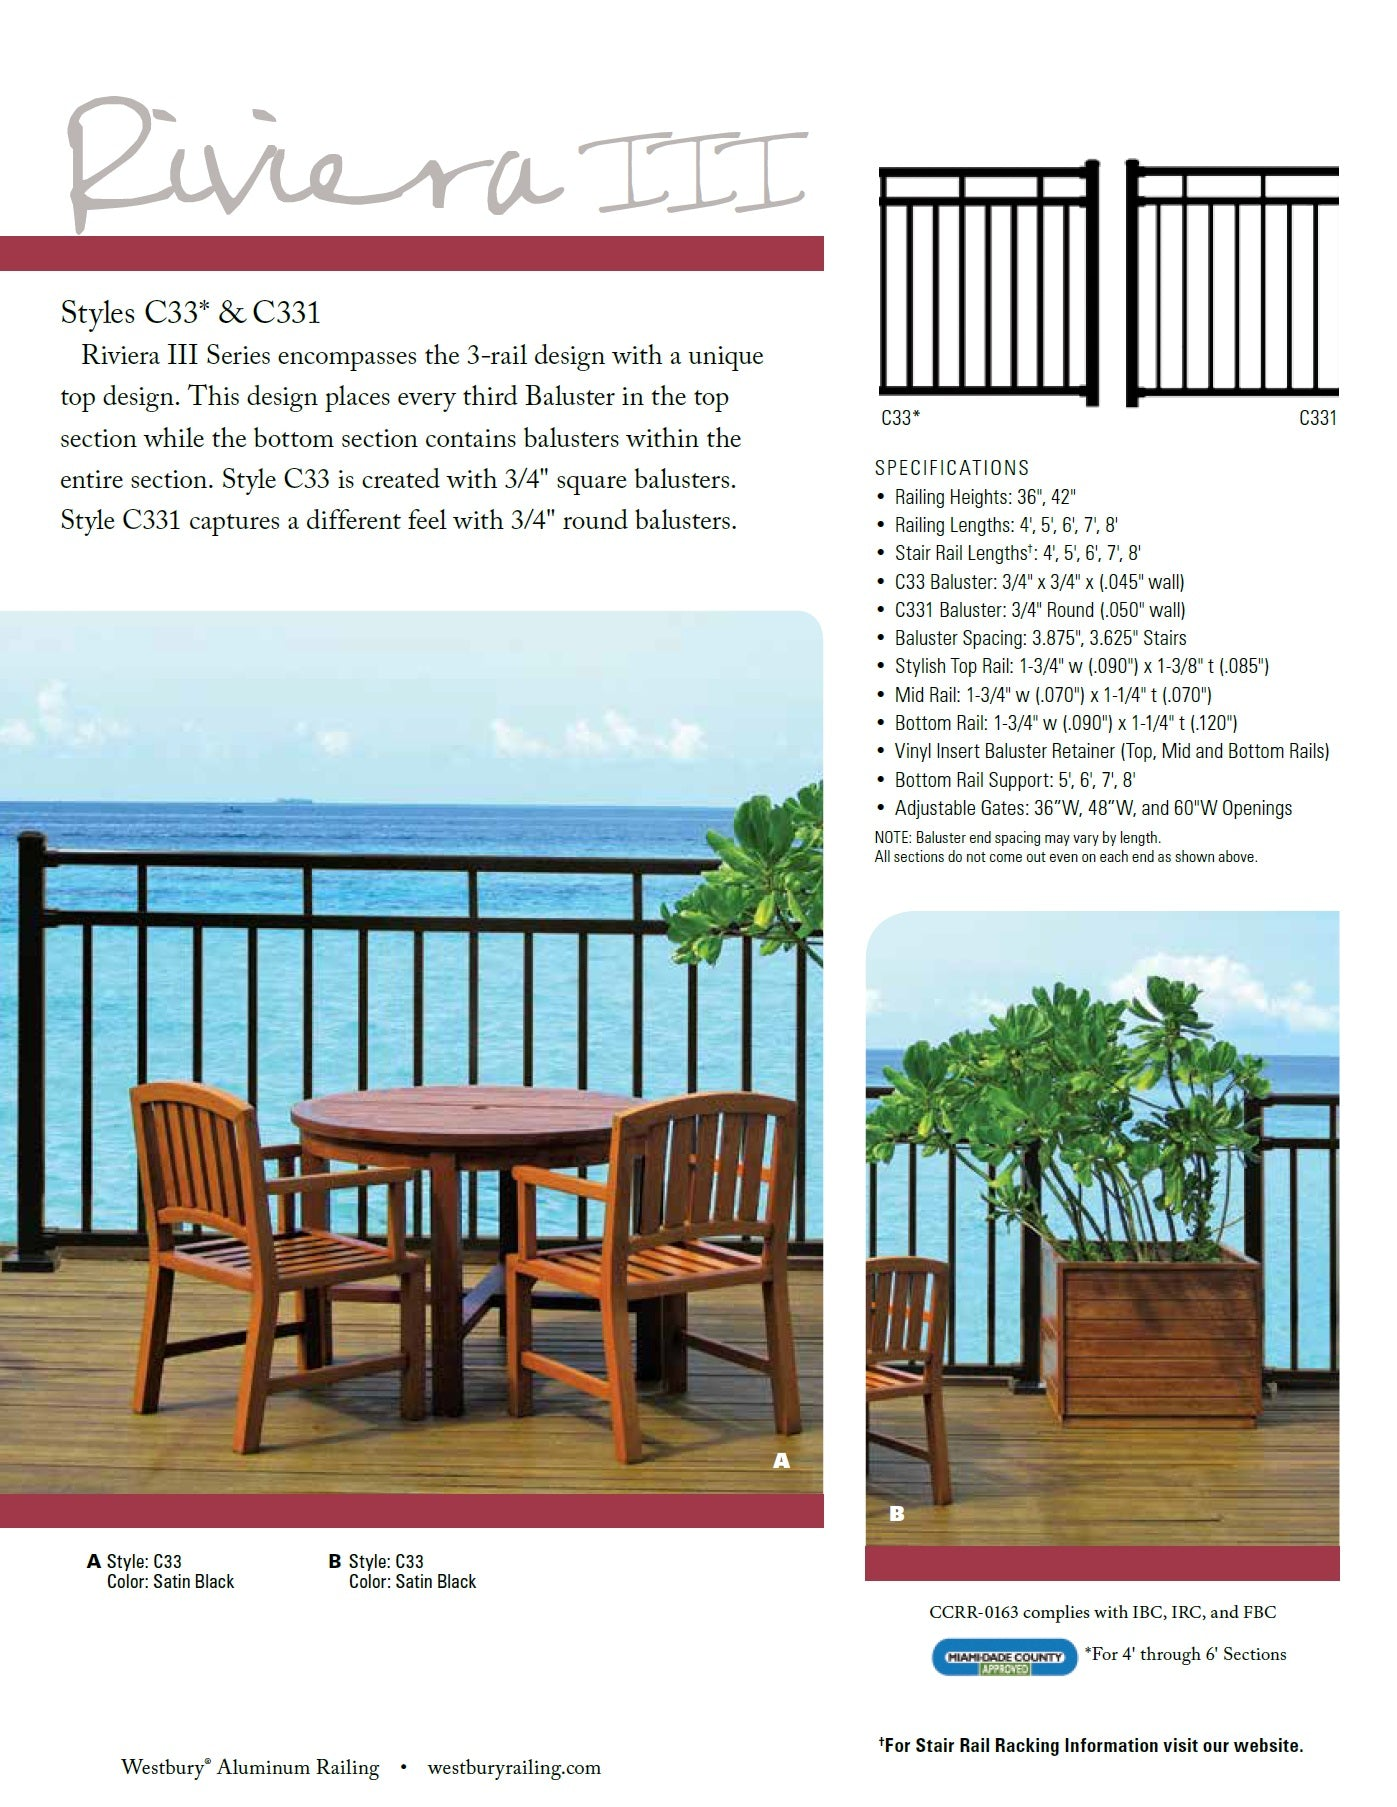 Riviera C33 and C331 Deck railing handrail deck handrail, rail system fence system